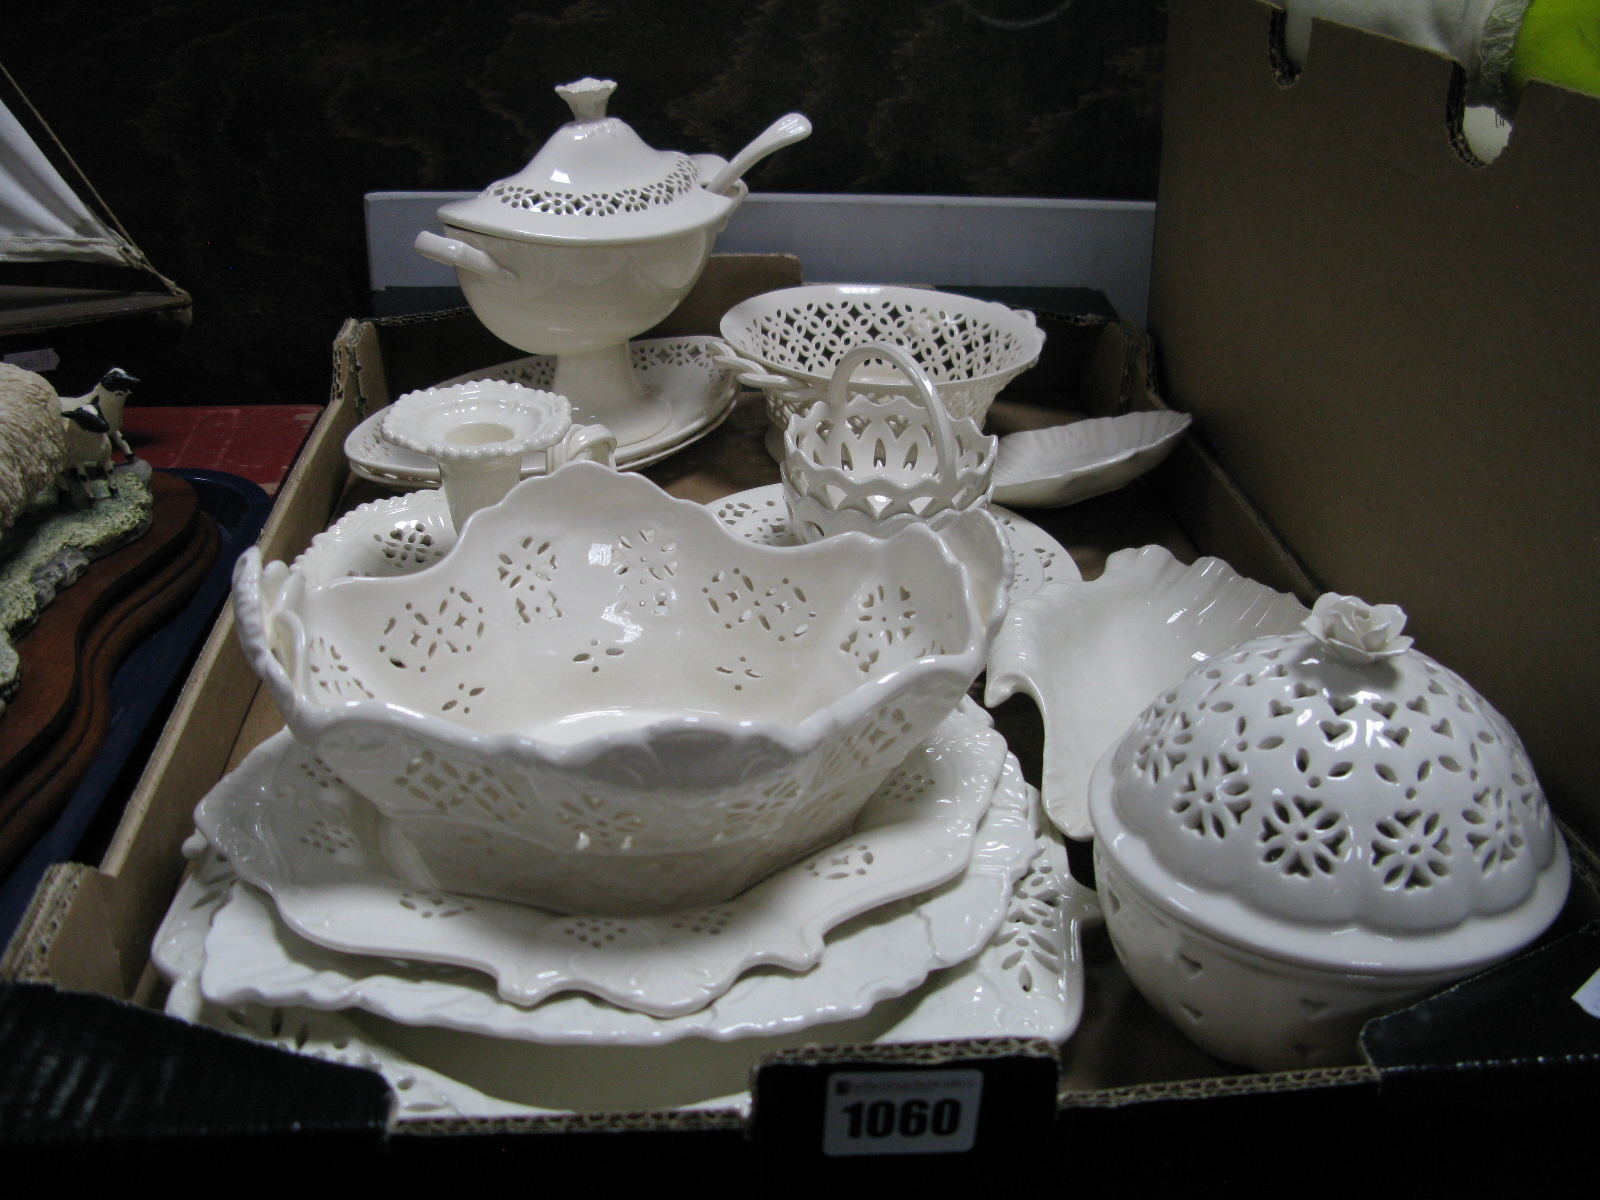 Lot 1060 - Leeds Creamware Pottery of Thirteen Pieces, including oval tureen, chamberstick, pot pourri.